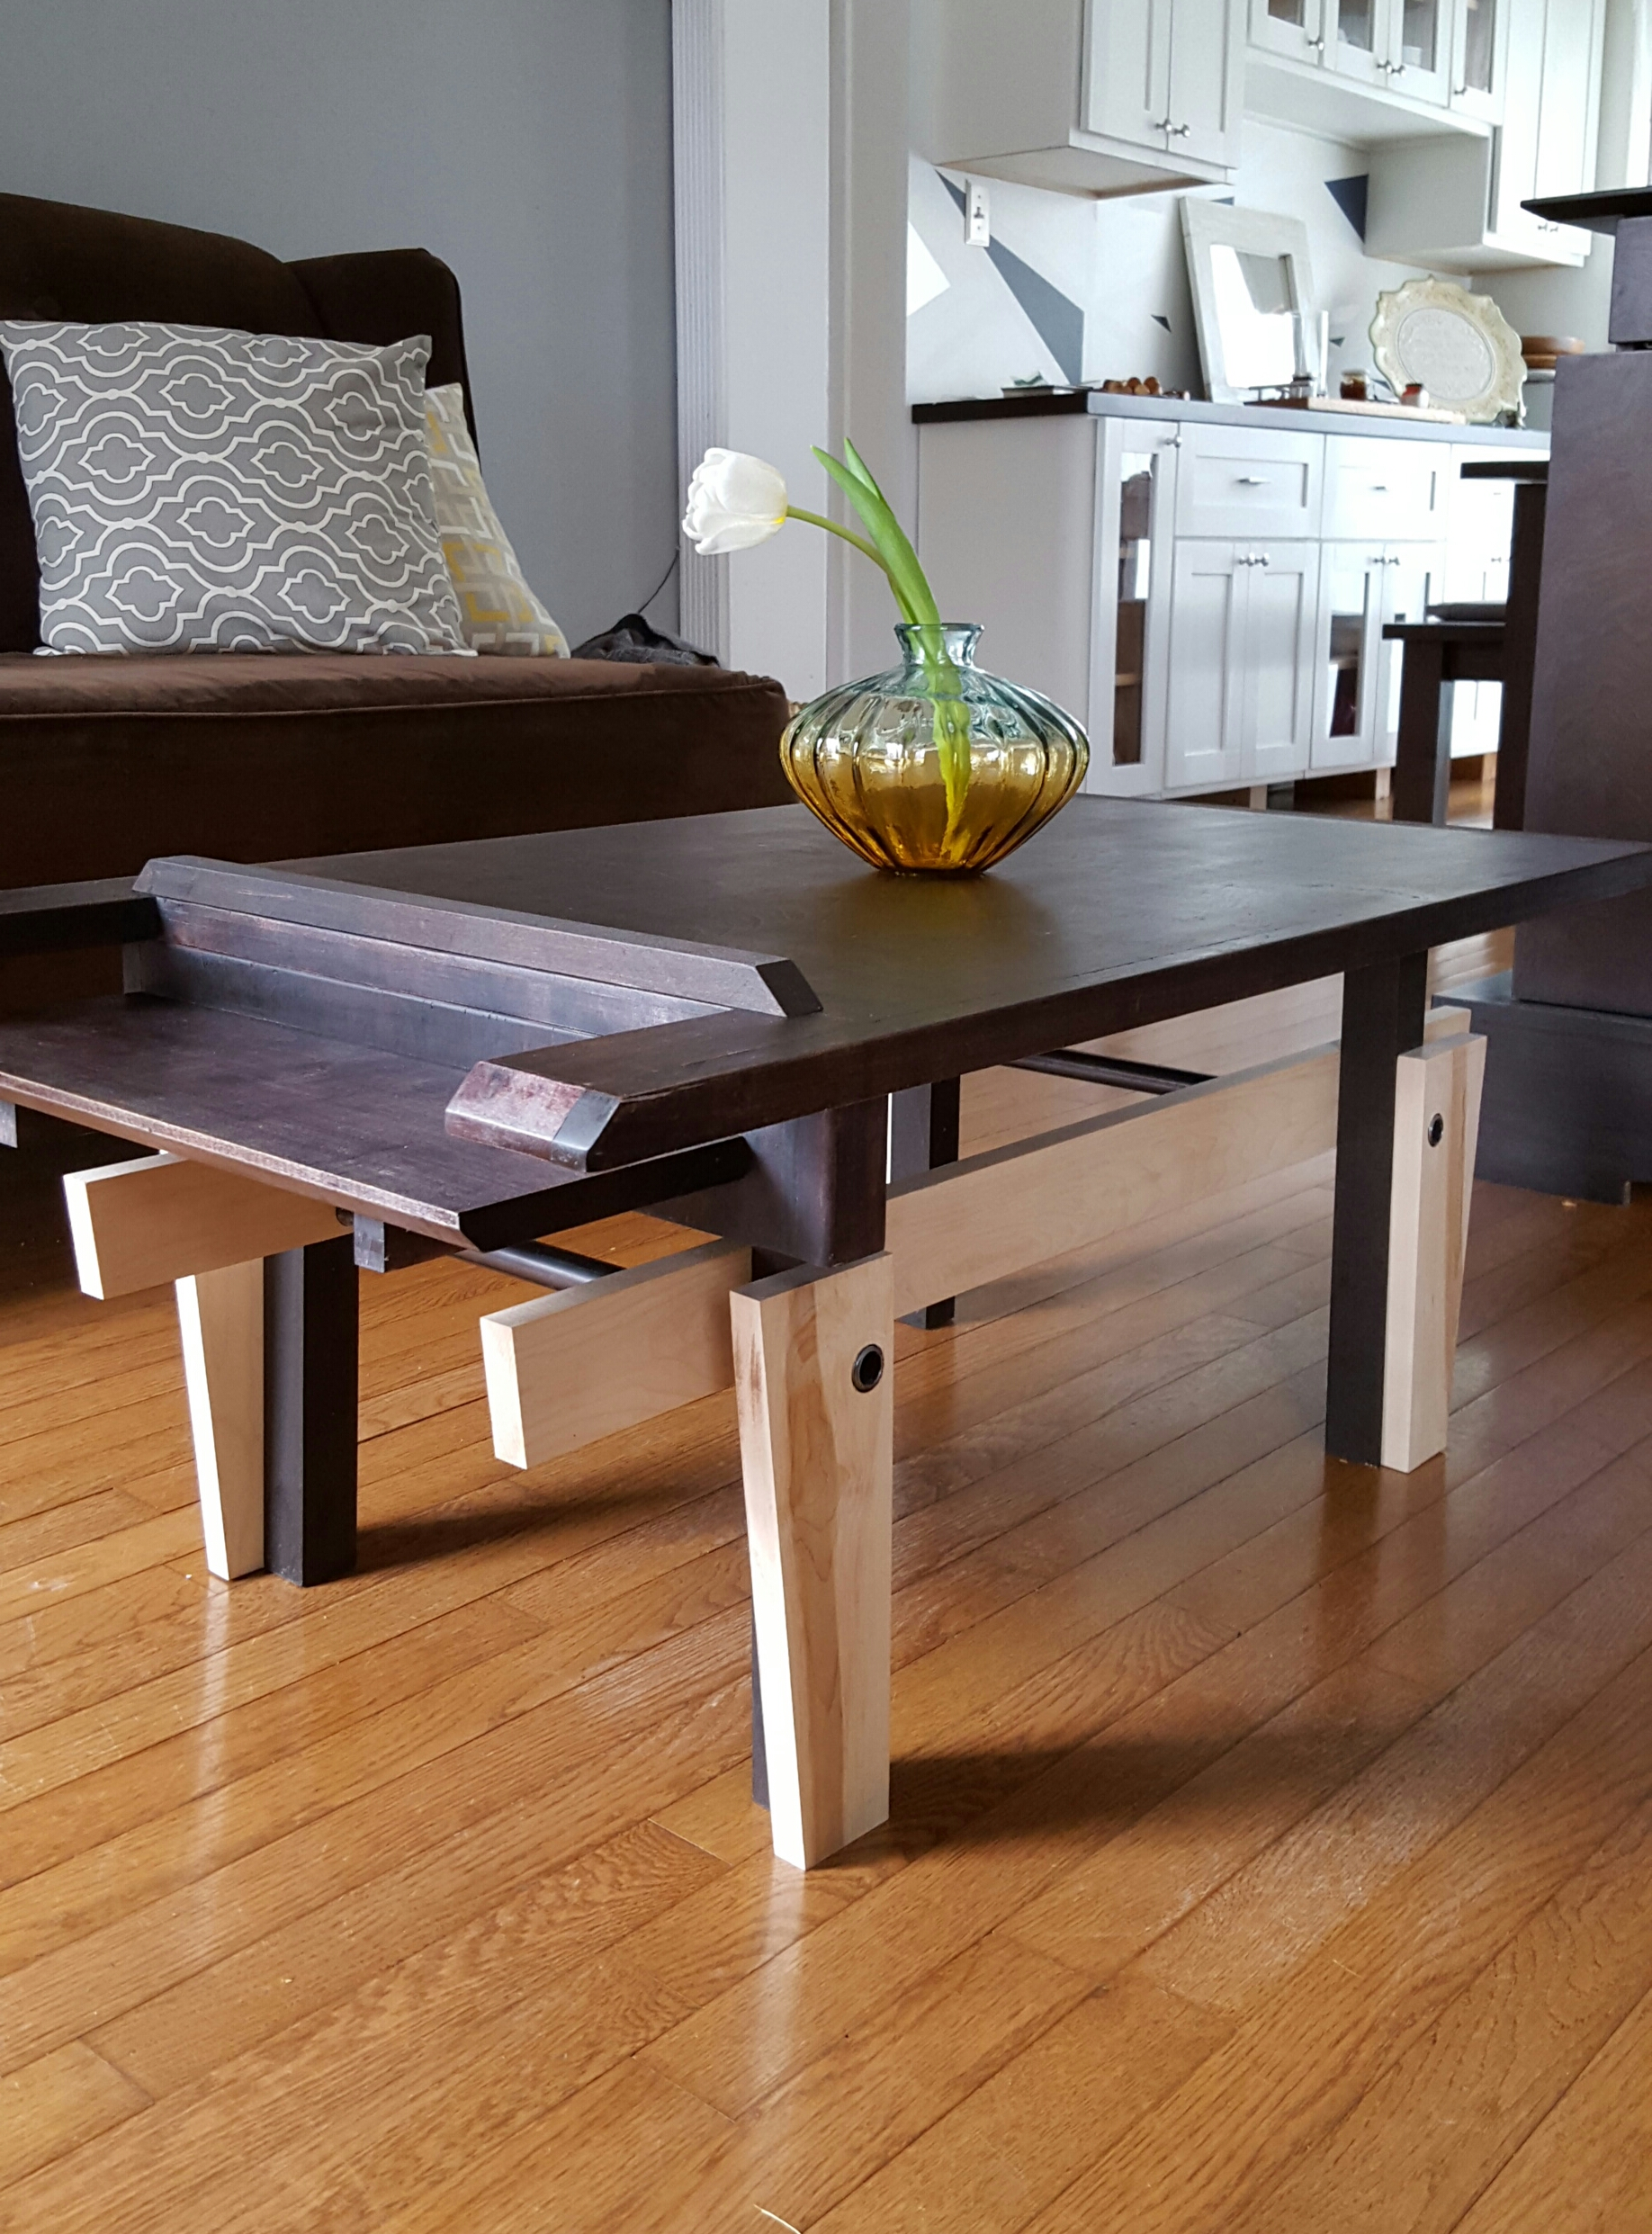 one level table